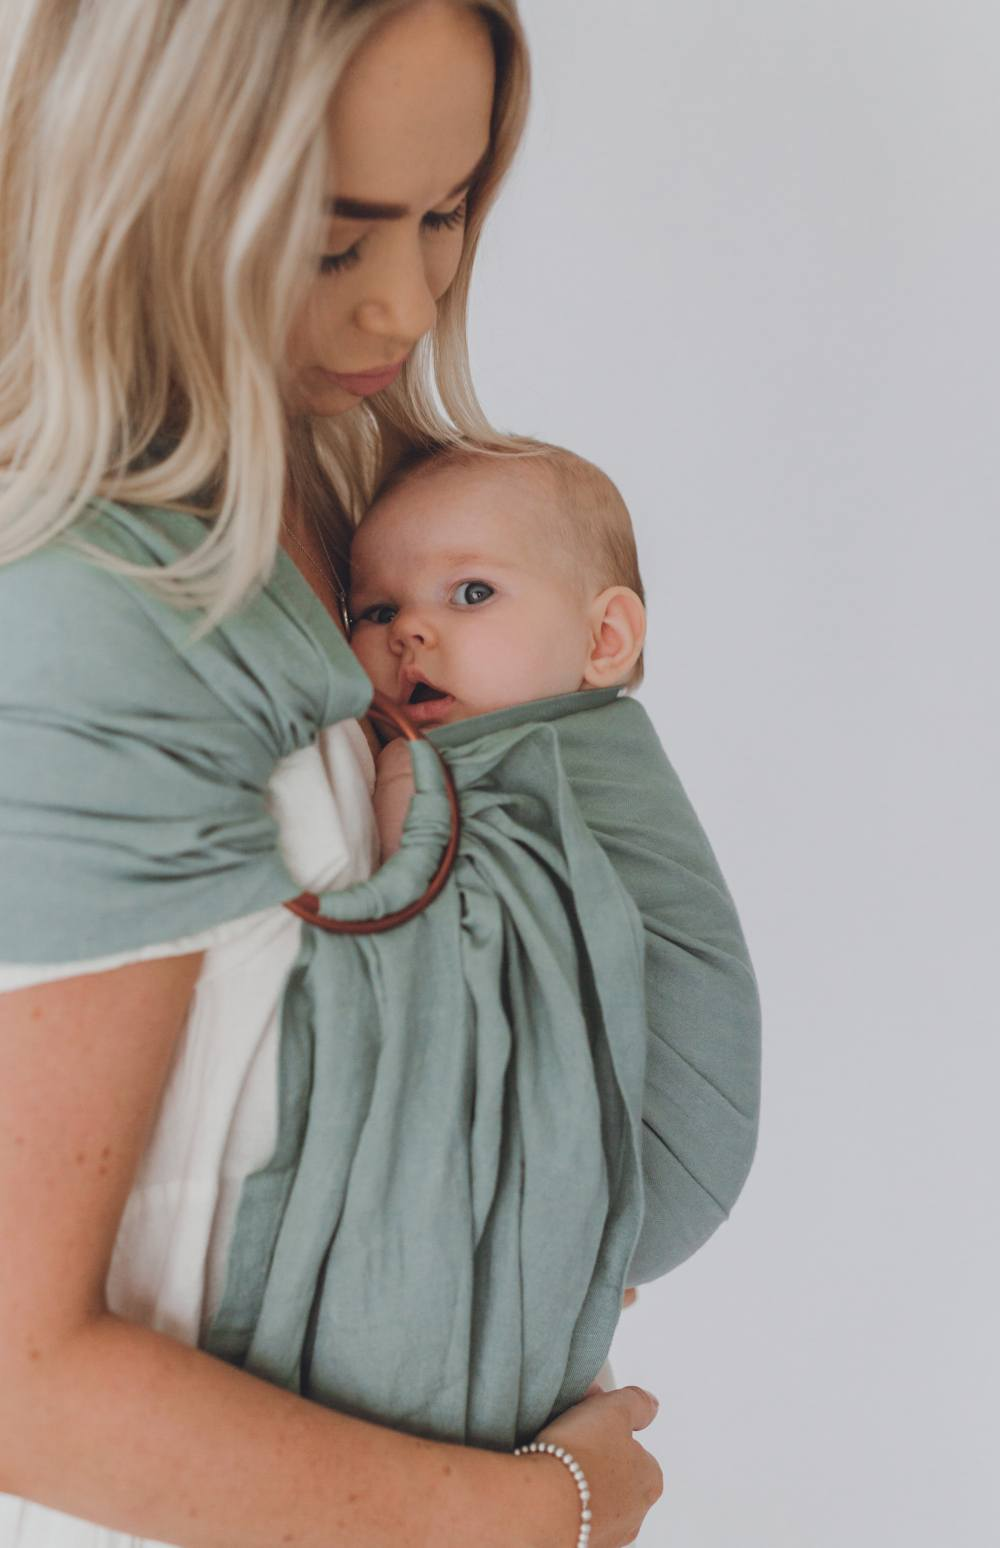 australia's best chekoh teal sling baby carrier for newborn infant and toddler